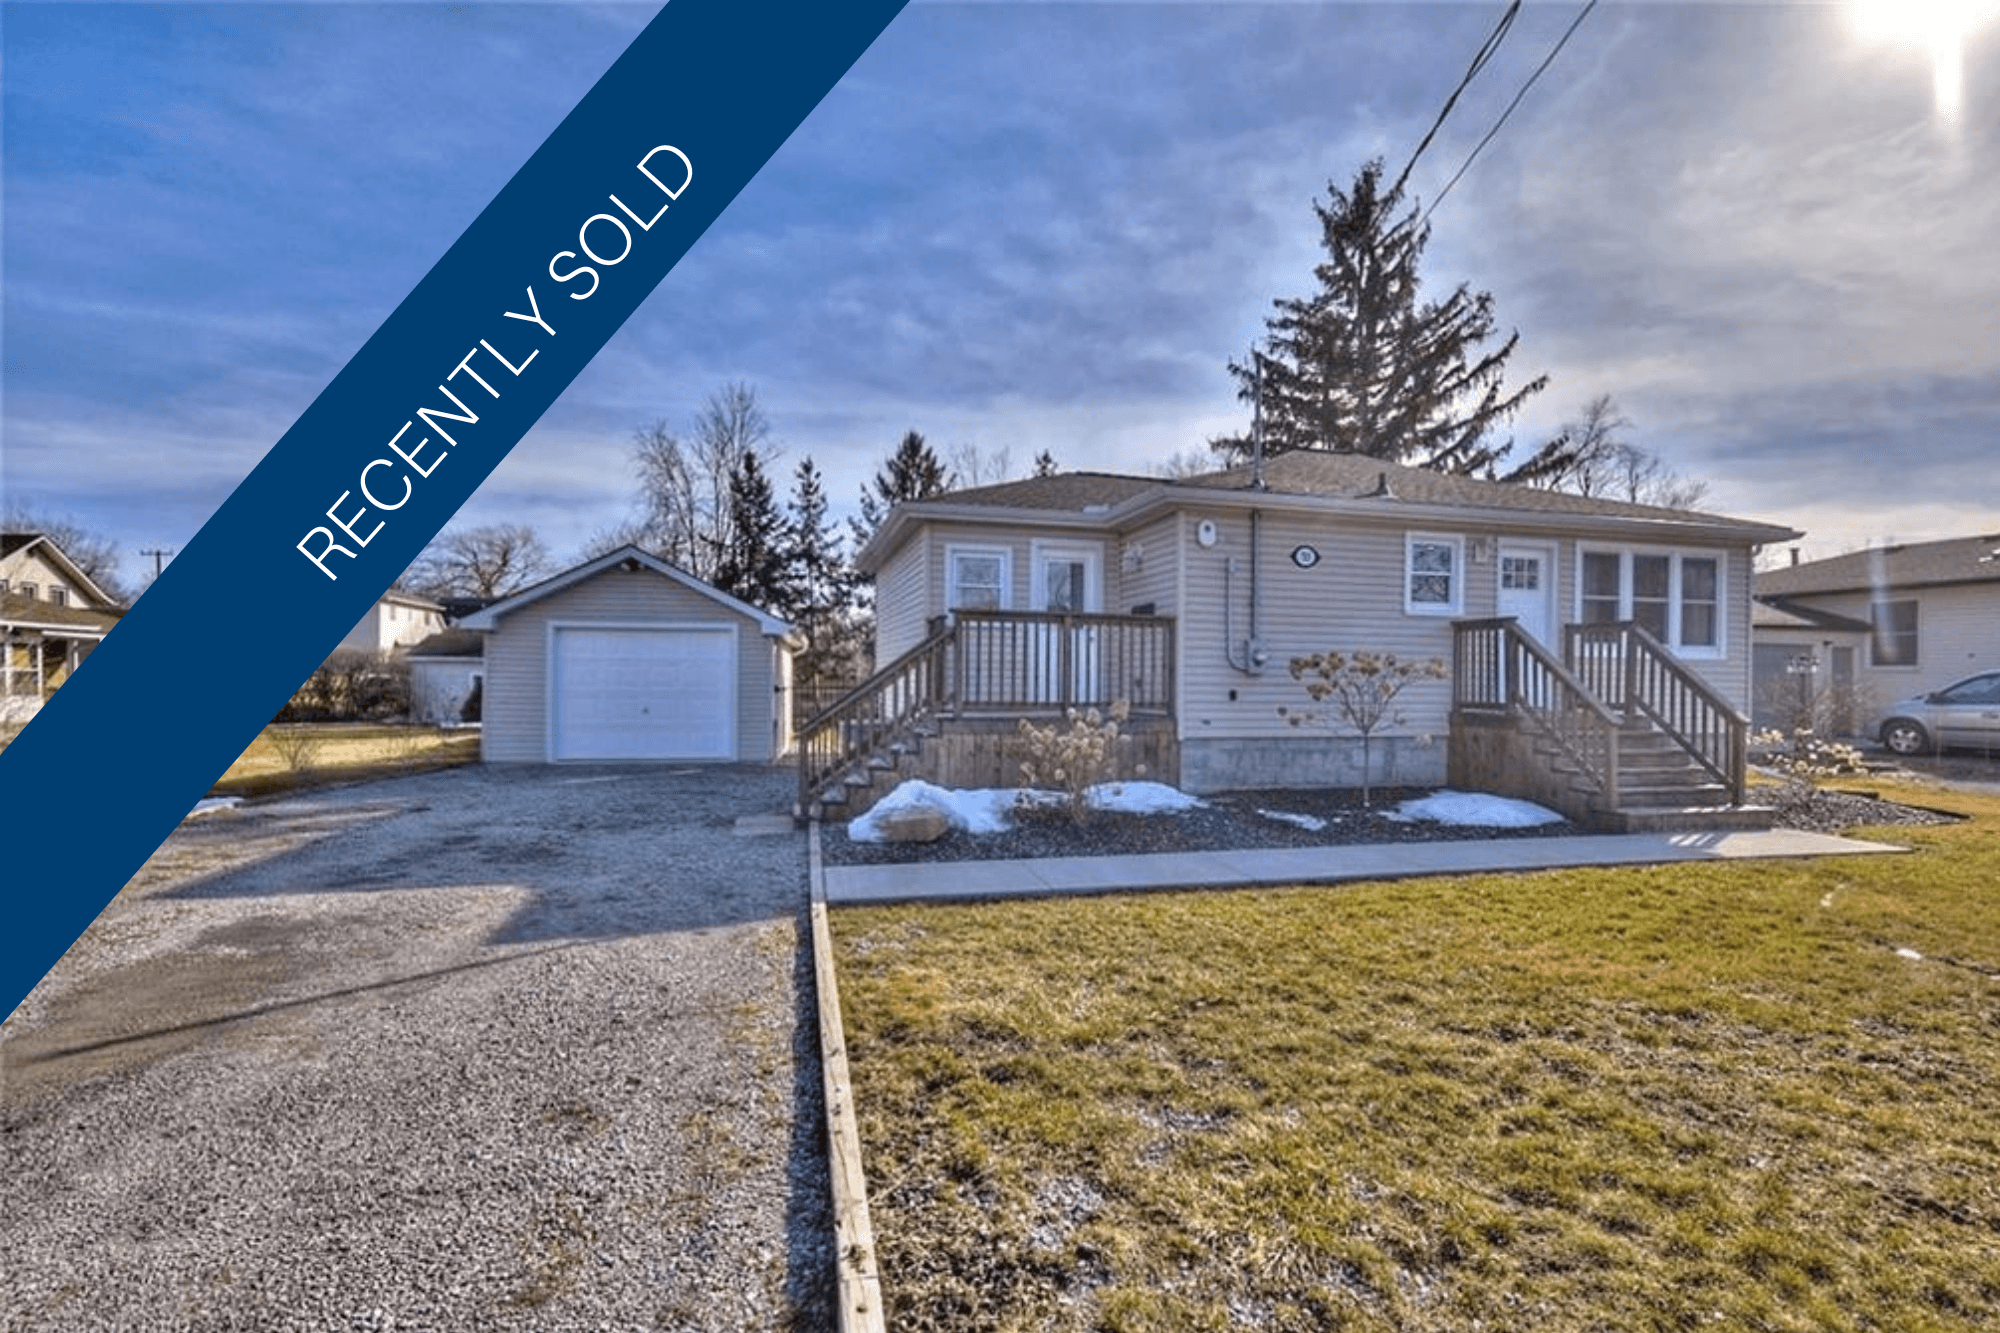 Property image for 705 Dominion Rd, Fort Erie  Copy